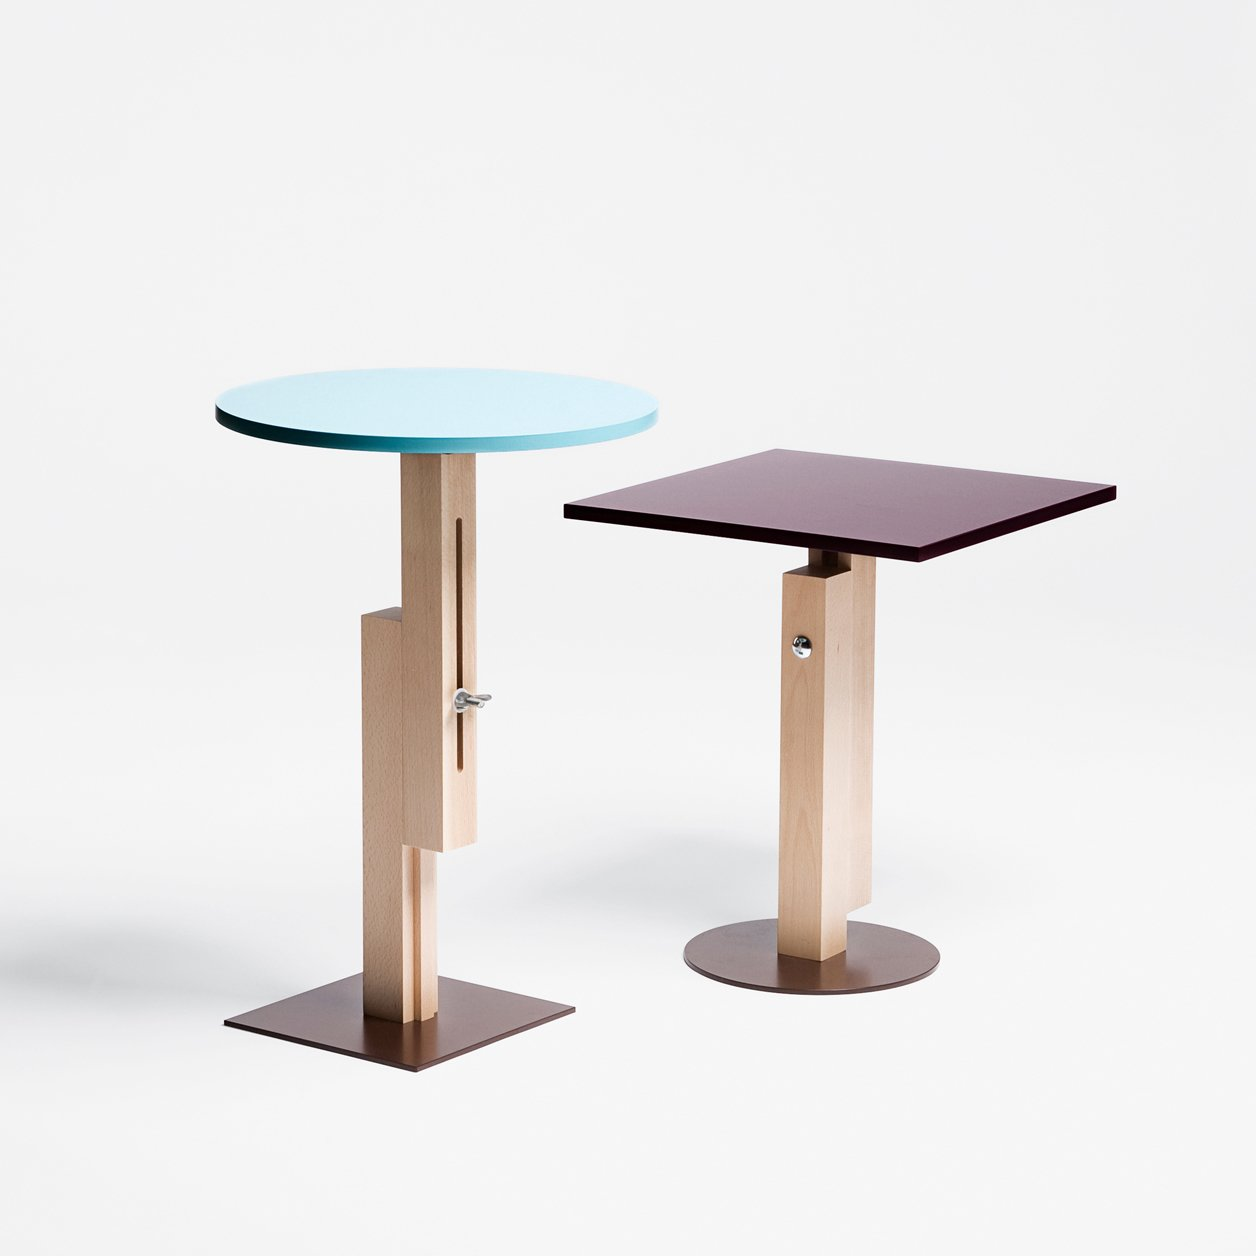 Konstantin Grcic's first releases, in 1991, were the Tom Tom and Tam Tam side tables for SCP. They were re-released in 2009 with sliding mechanisms on their support columns. The result? Adjustable height built in.  Photo 2 of 26 in Industrial Designer Focus: Konstantin Grcic